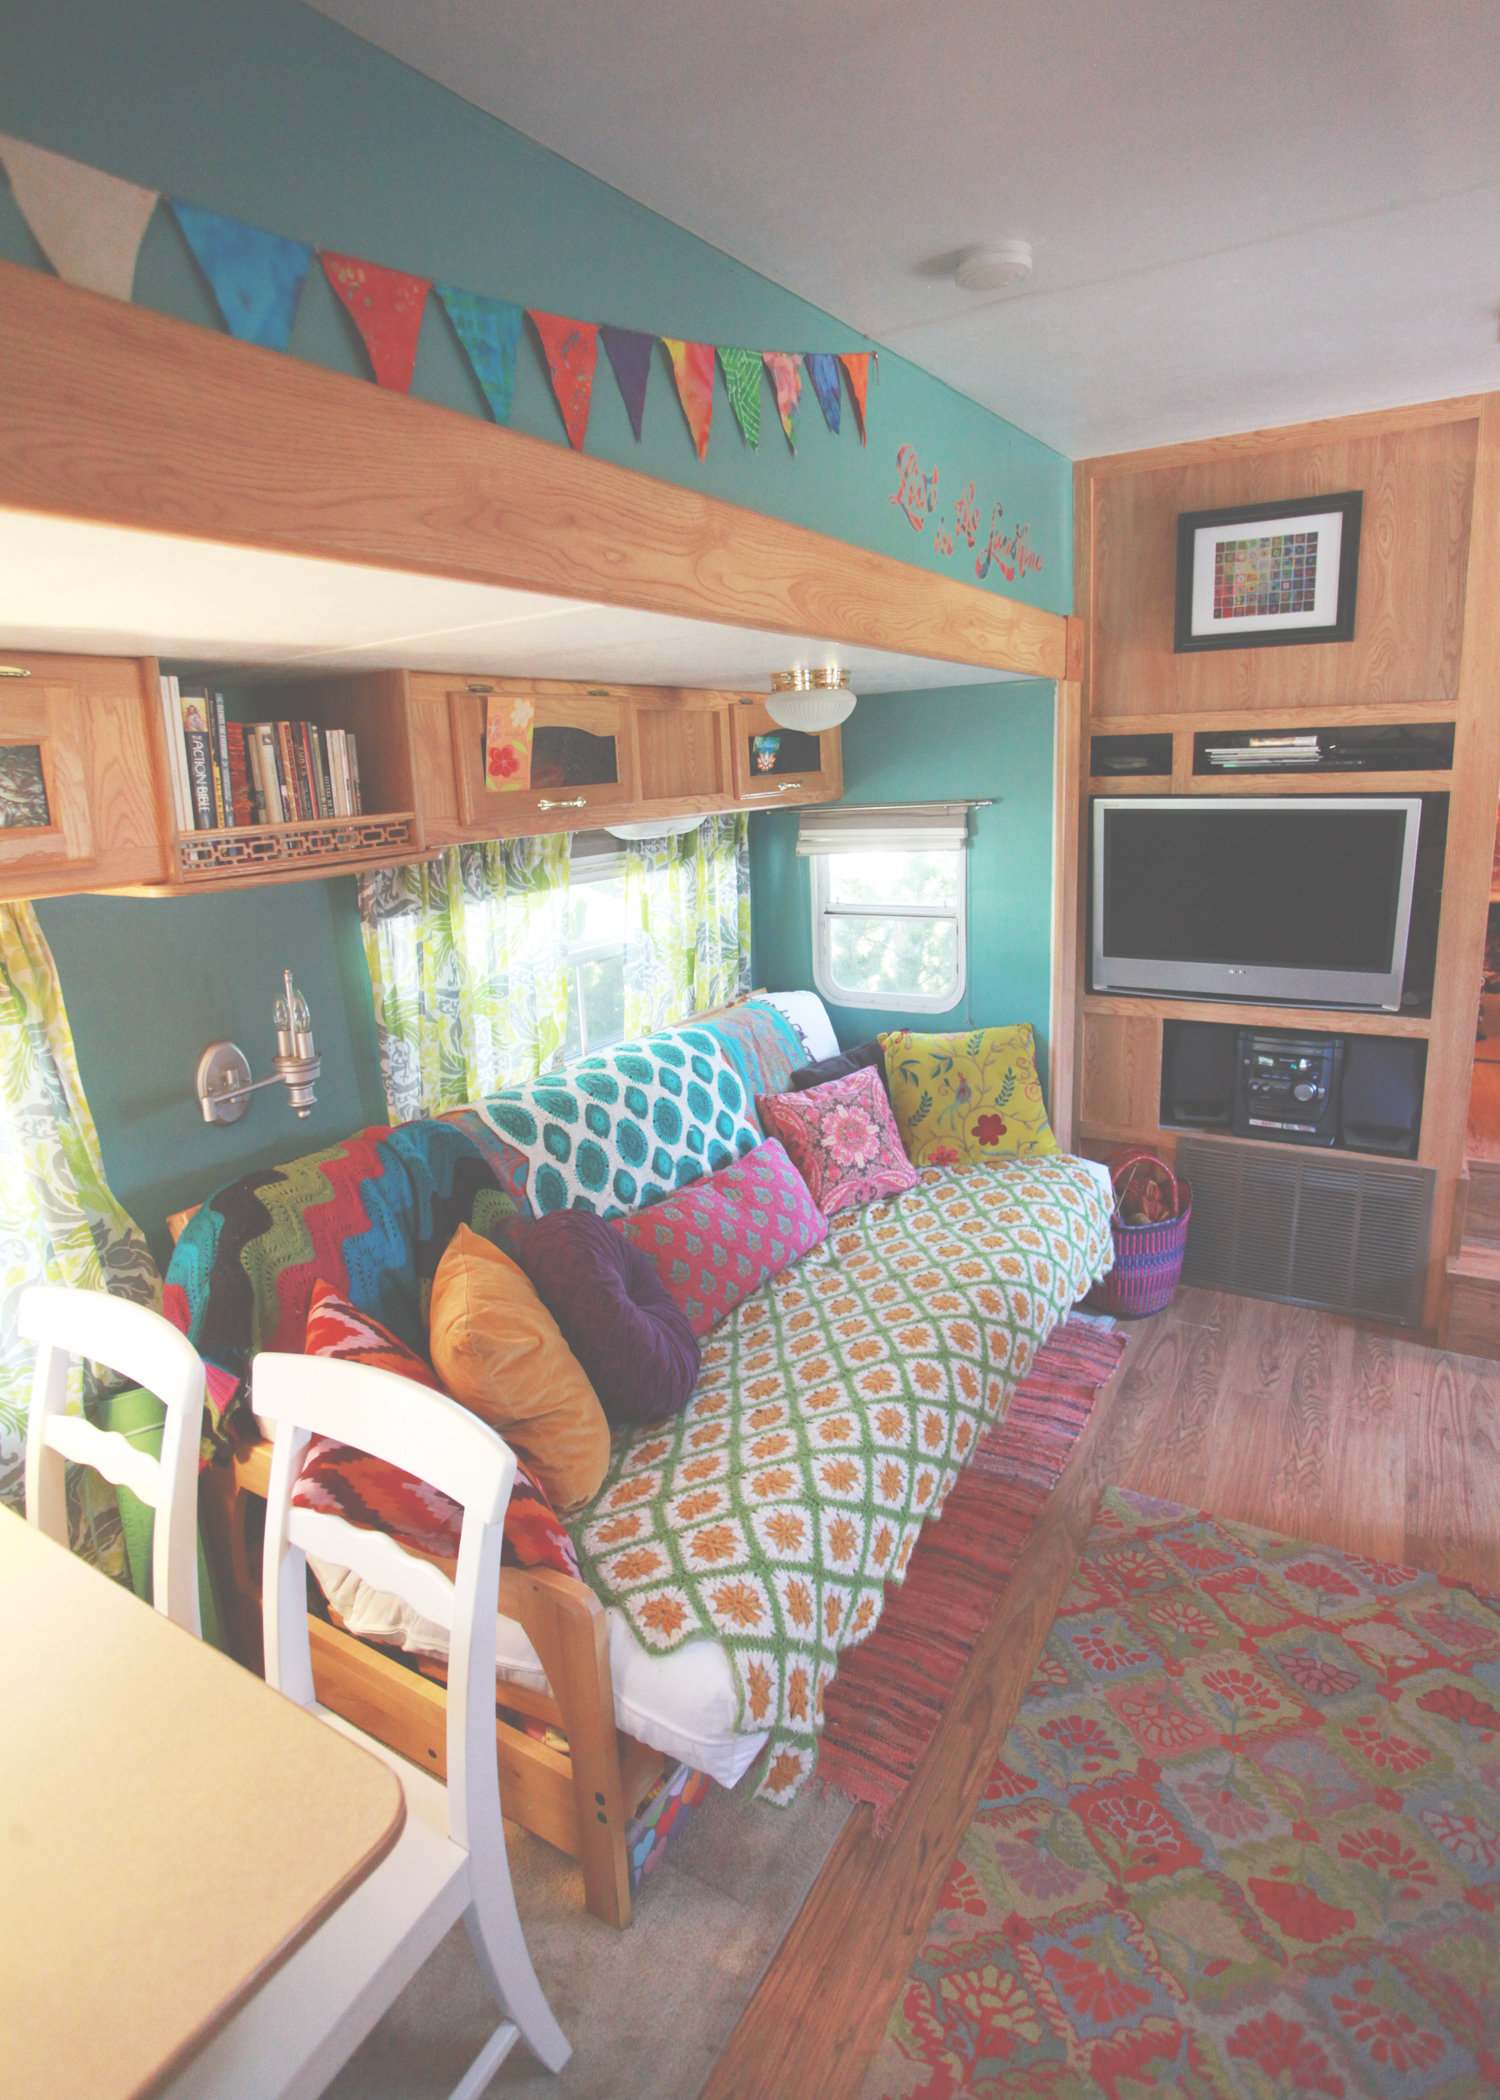 10 RV Decorating Ideas You Need to See - RVshare.com